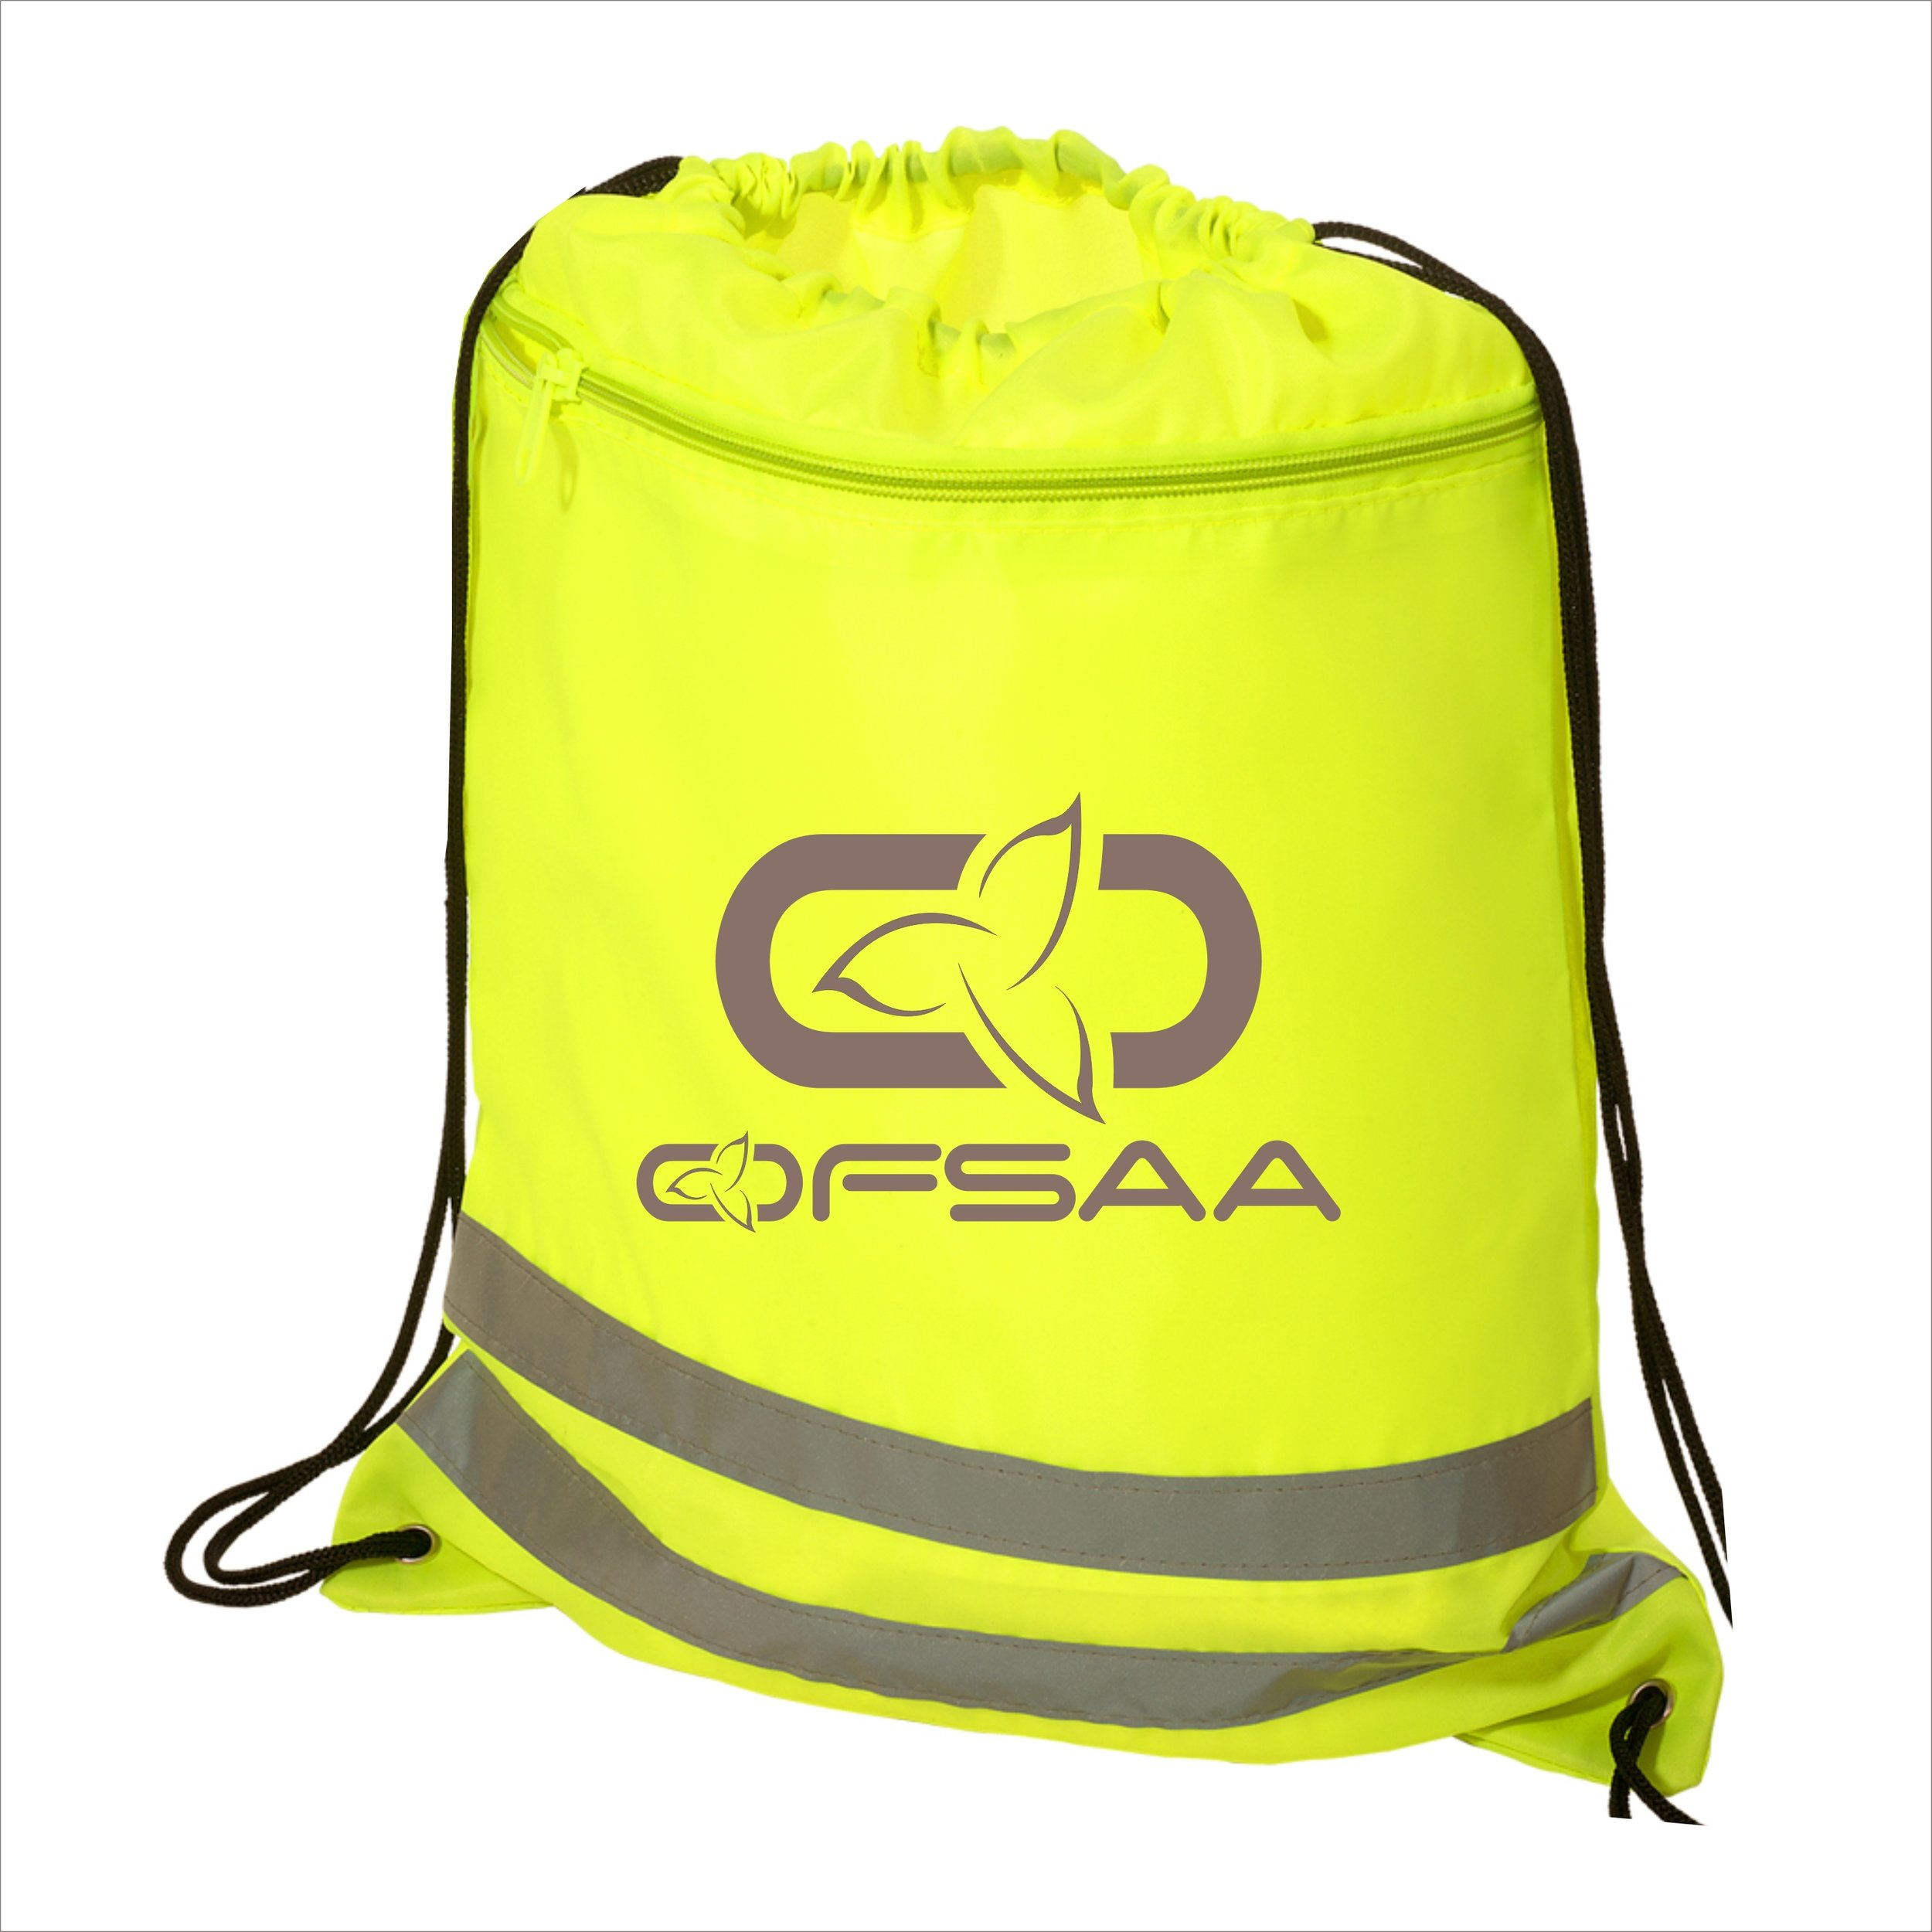 Reflective bag yellow.jpg